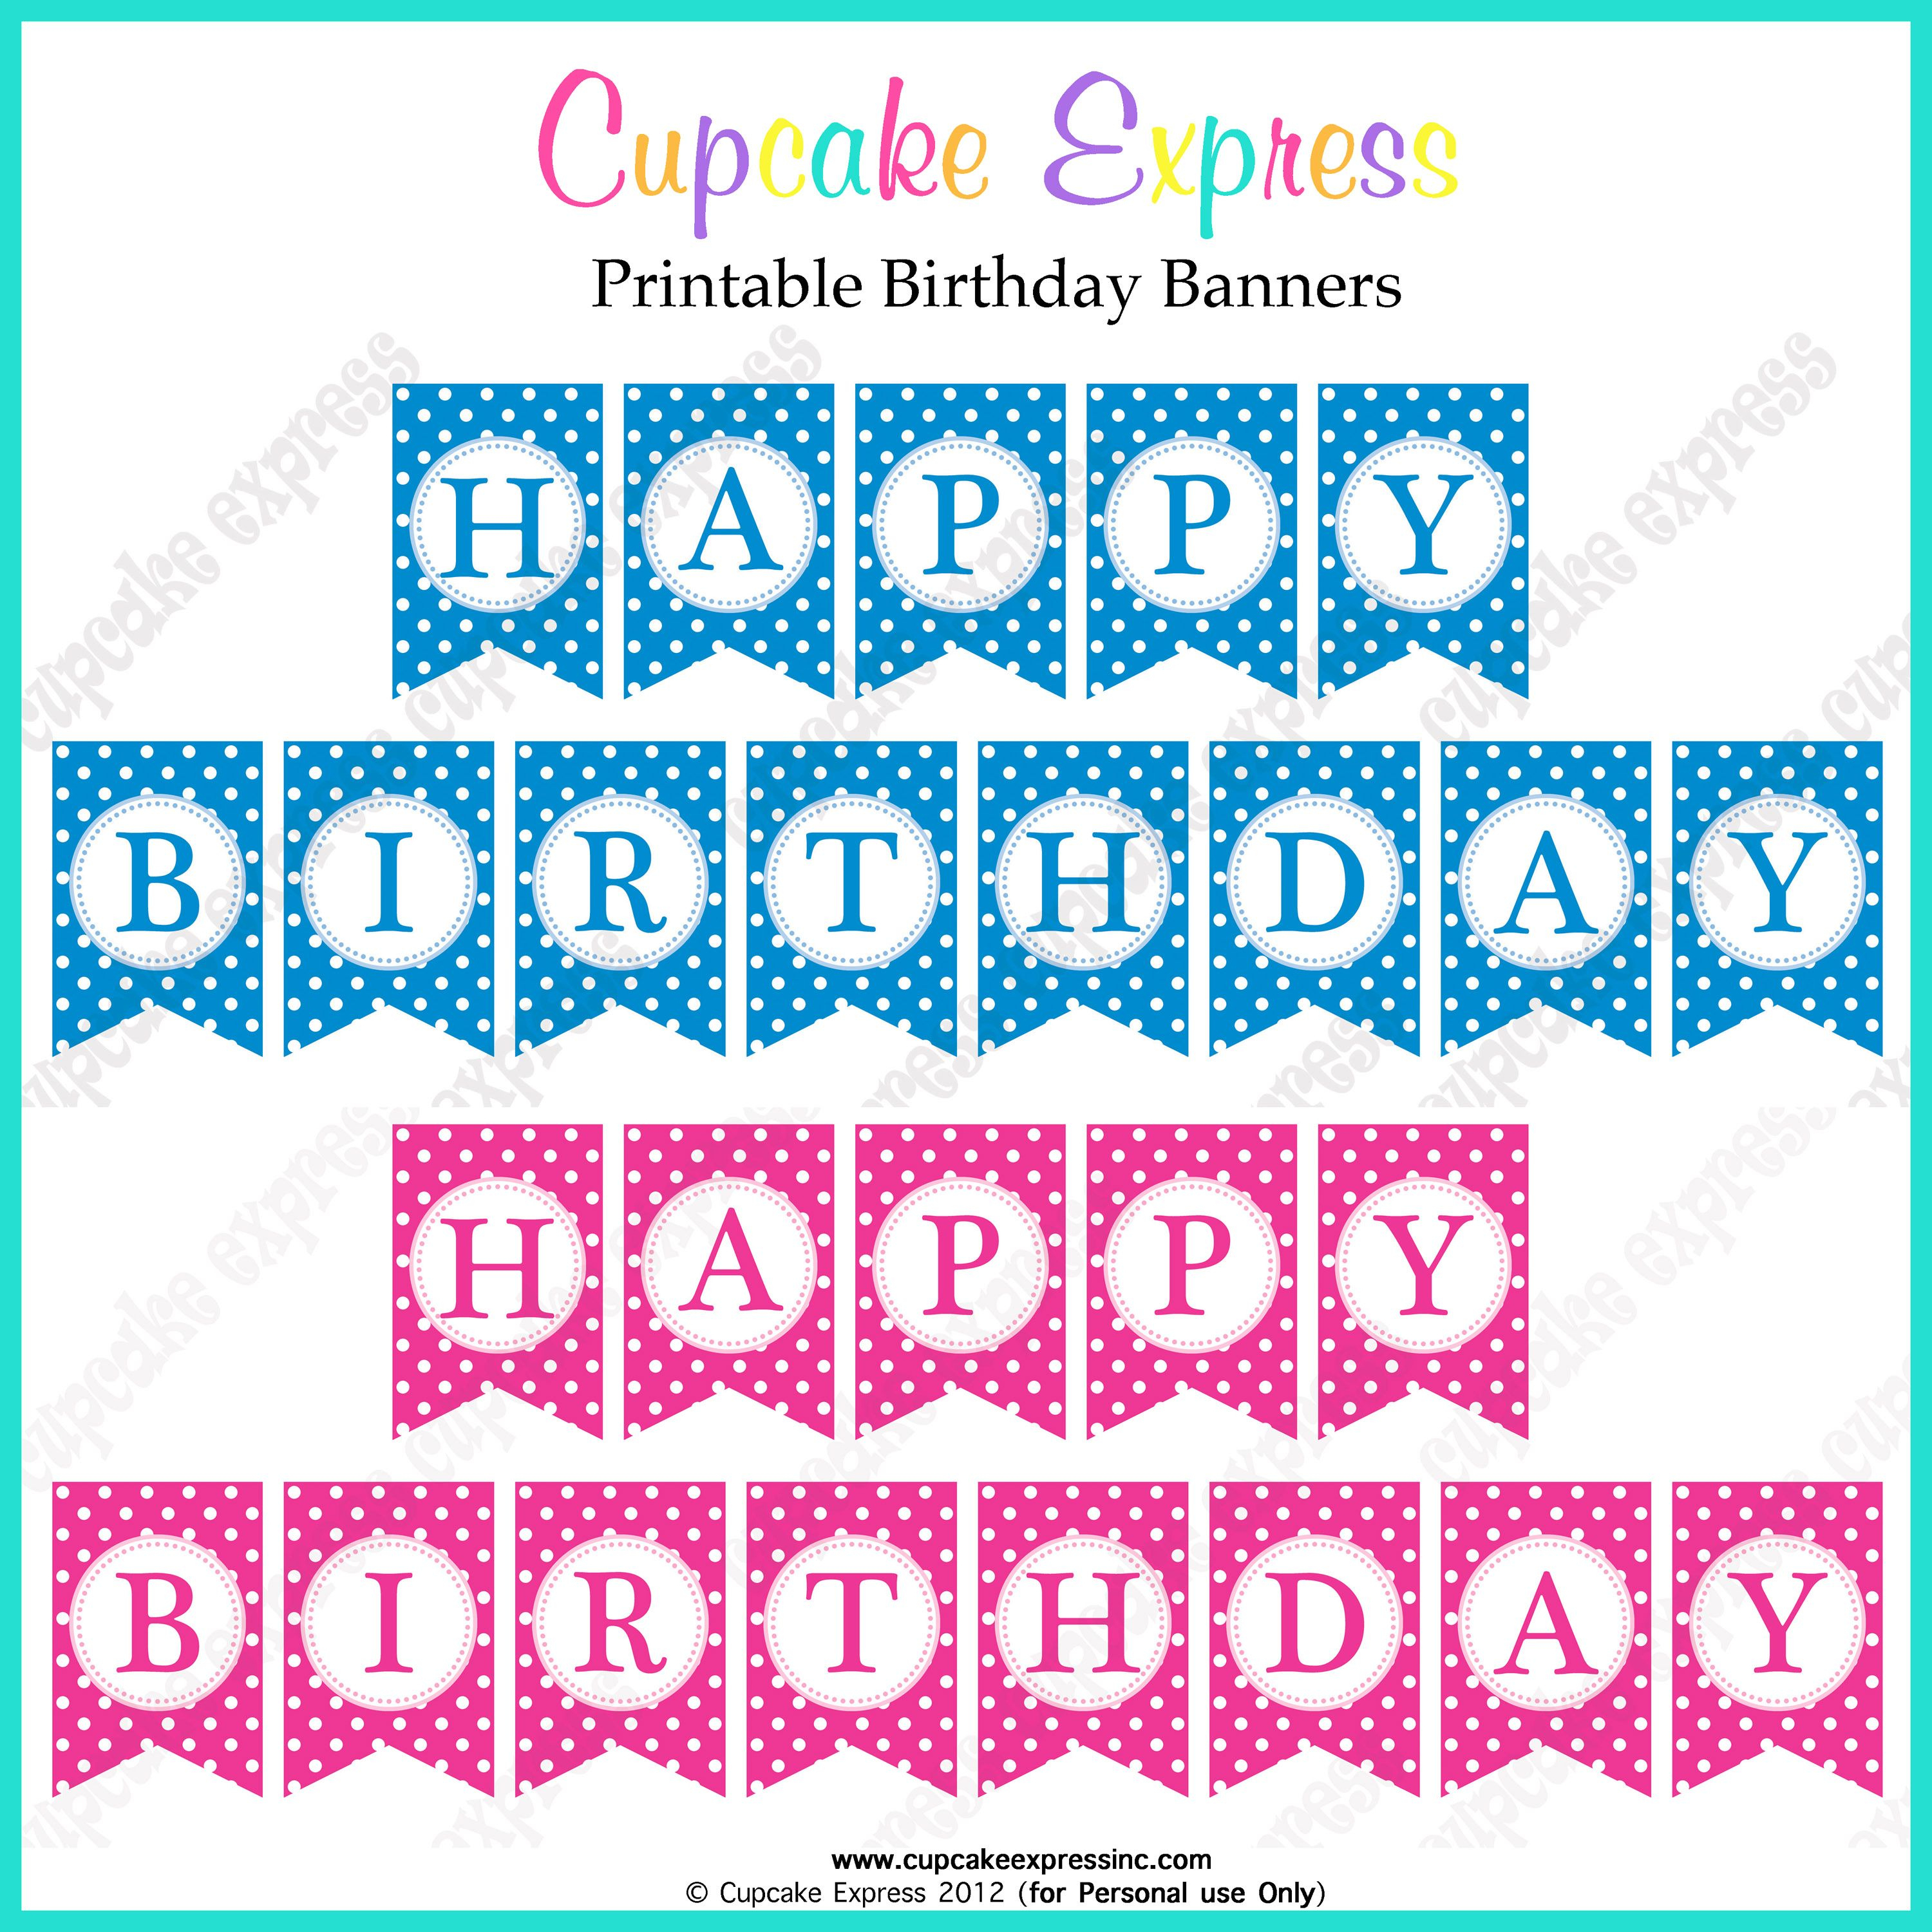 Free Printable Happy Birthday Banners Pink Blue | Free Printables - Free Printable Happy Birthday Banner